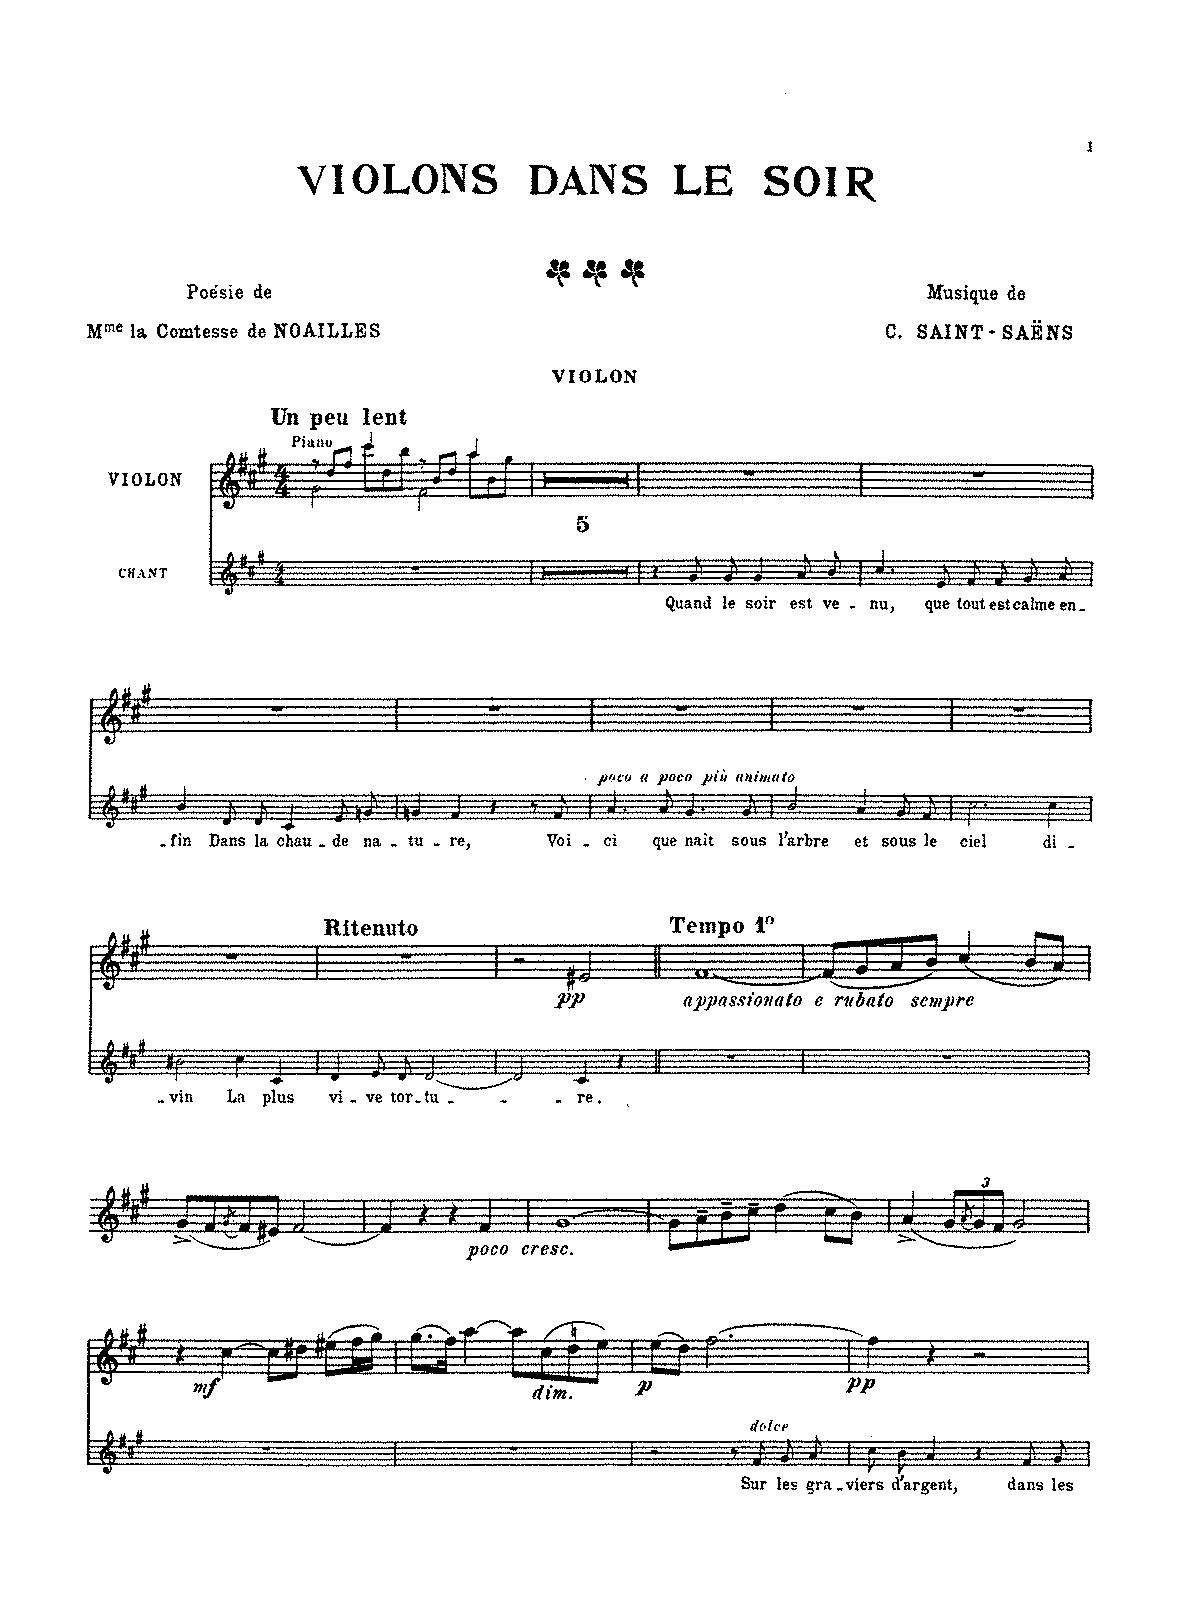 PMLP131303-Saint-Saëns - Violons dans le soir (voice, piano and violin).pdf